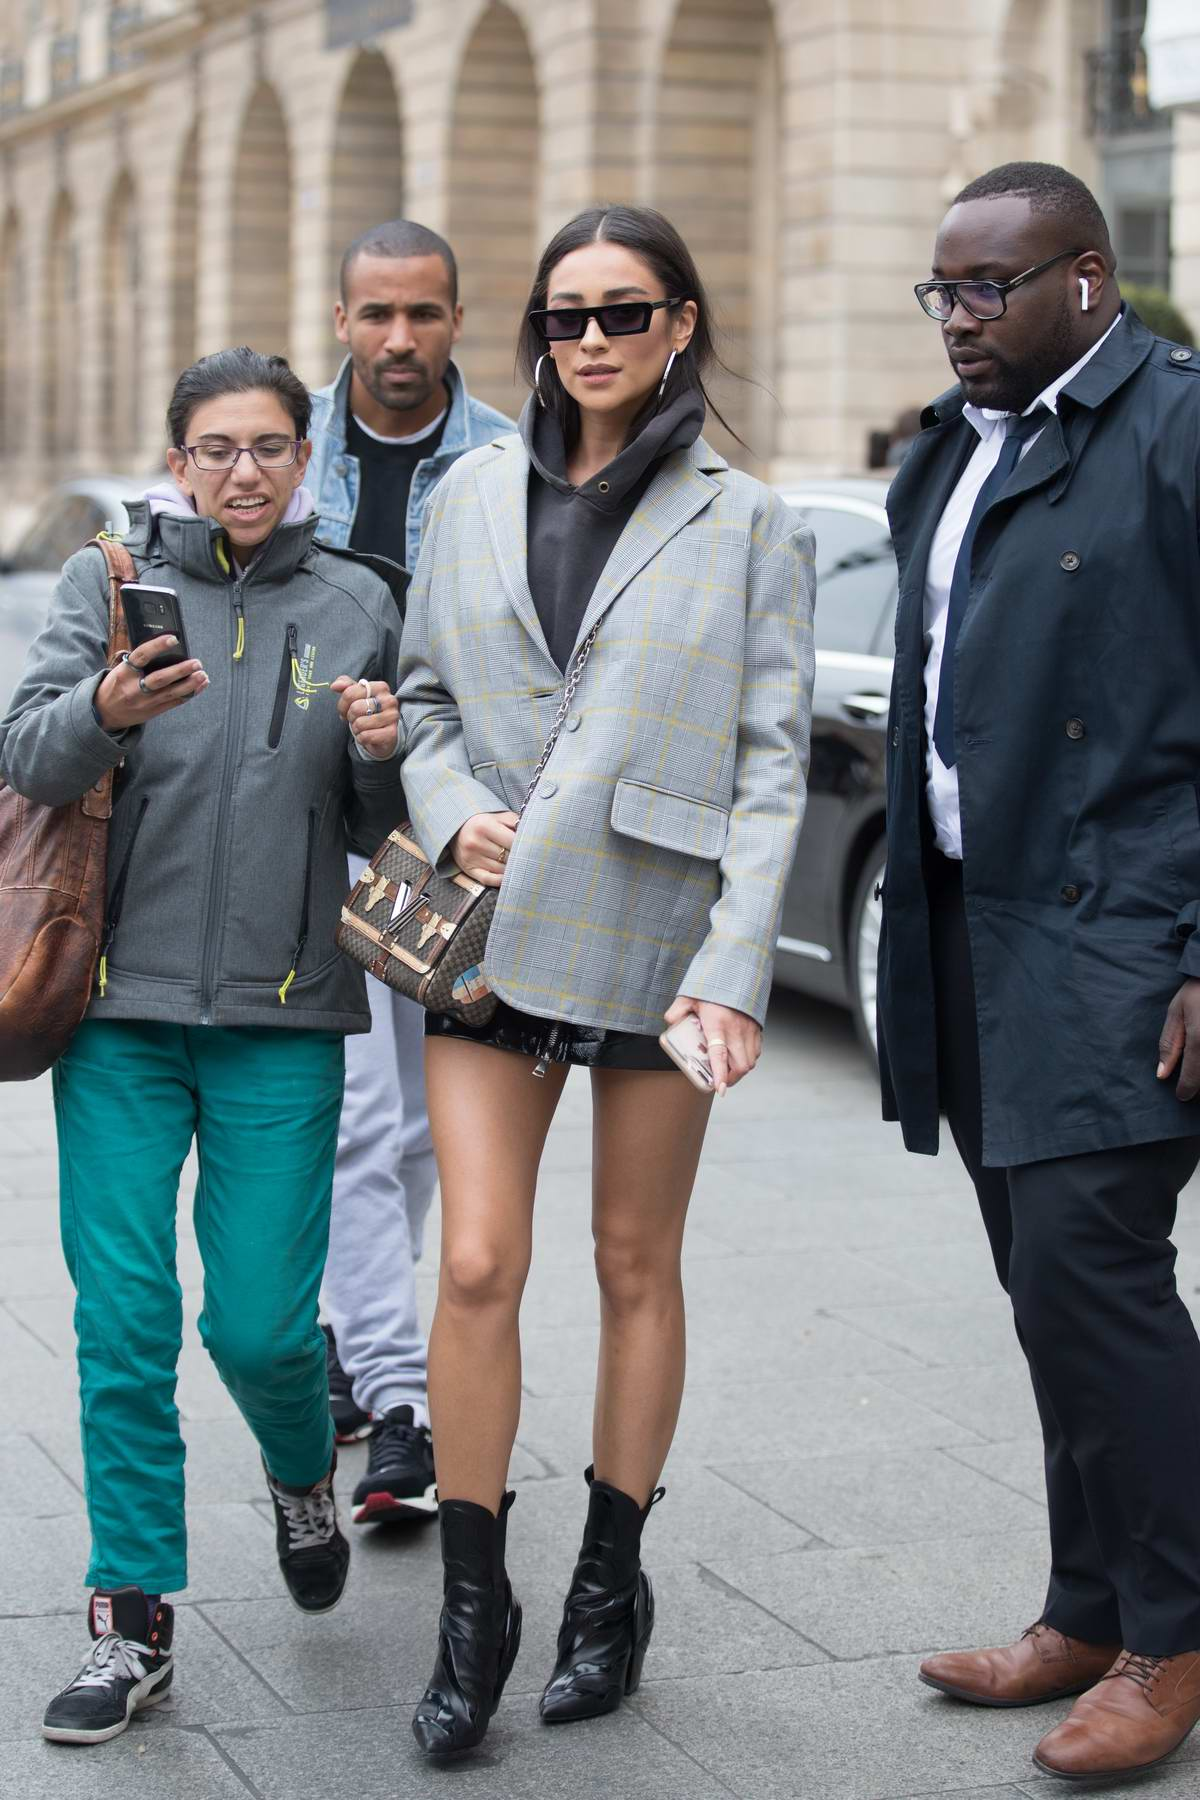 Shay Mitchell looks stylish in a grey blazer as she leaves the Ritz Hotel in Paris, France